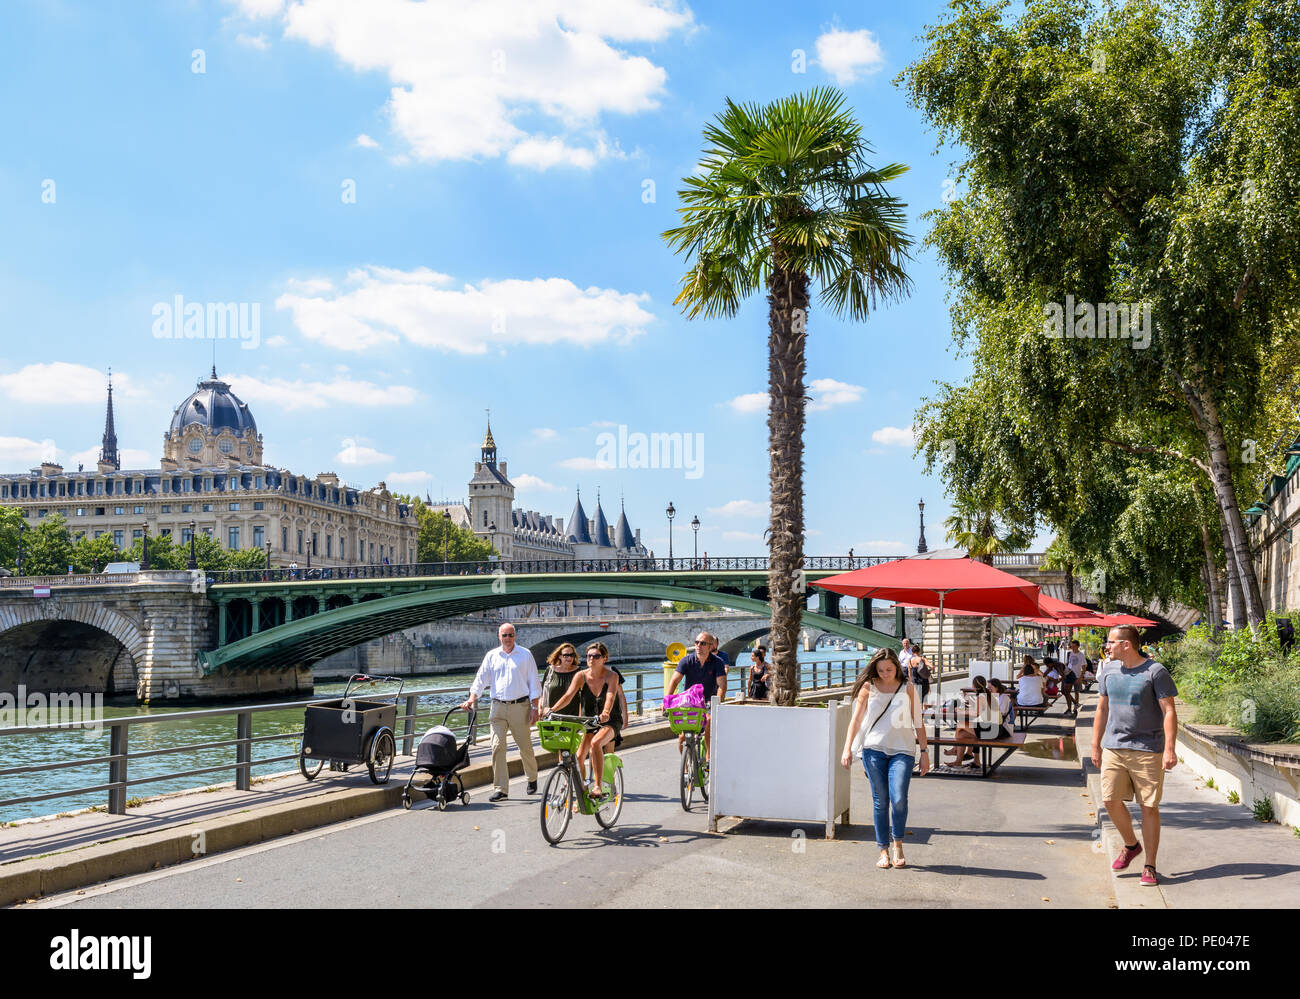 People strolling and biking on the banks of the Seine during Paris-Plages event, with the commercial court and the Palais de la Cite in the background - Stock Image